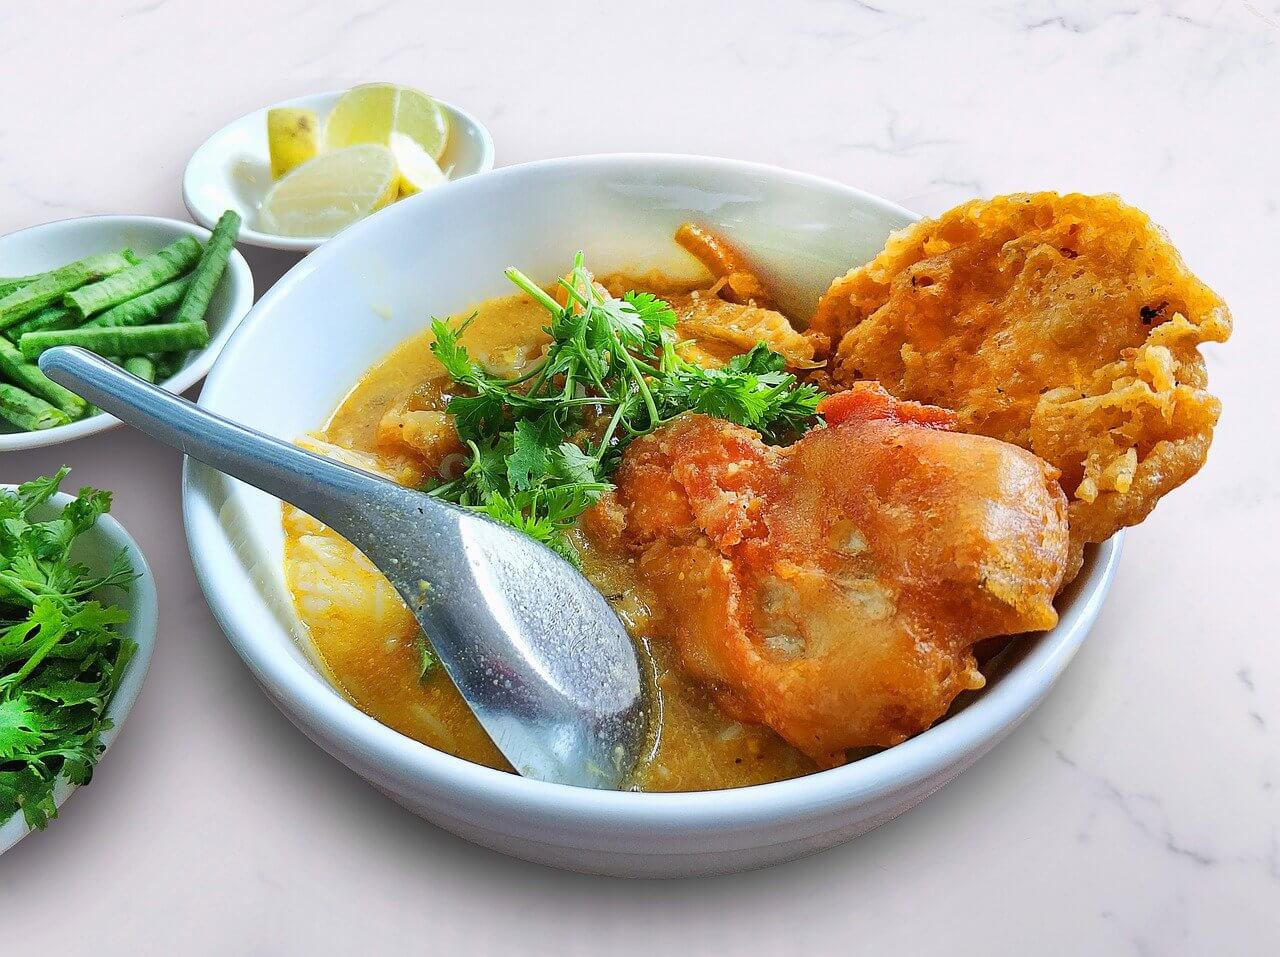 A mohinga soup with fried chicken - beloved national dish in Myanmar